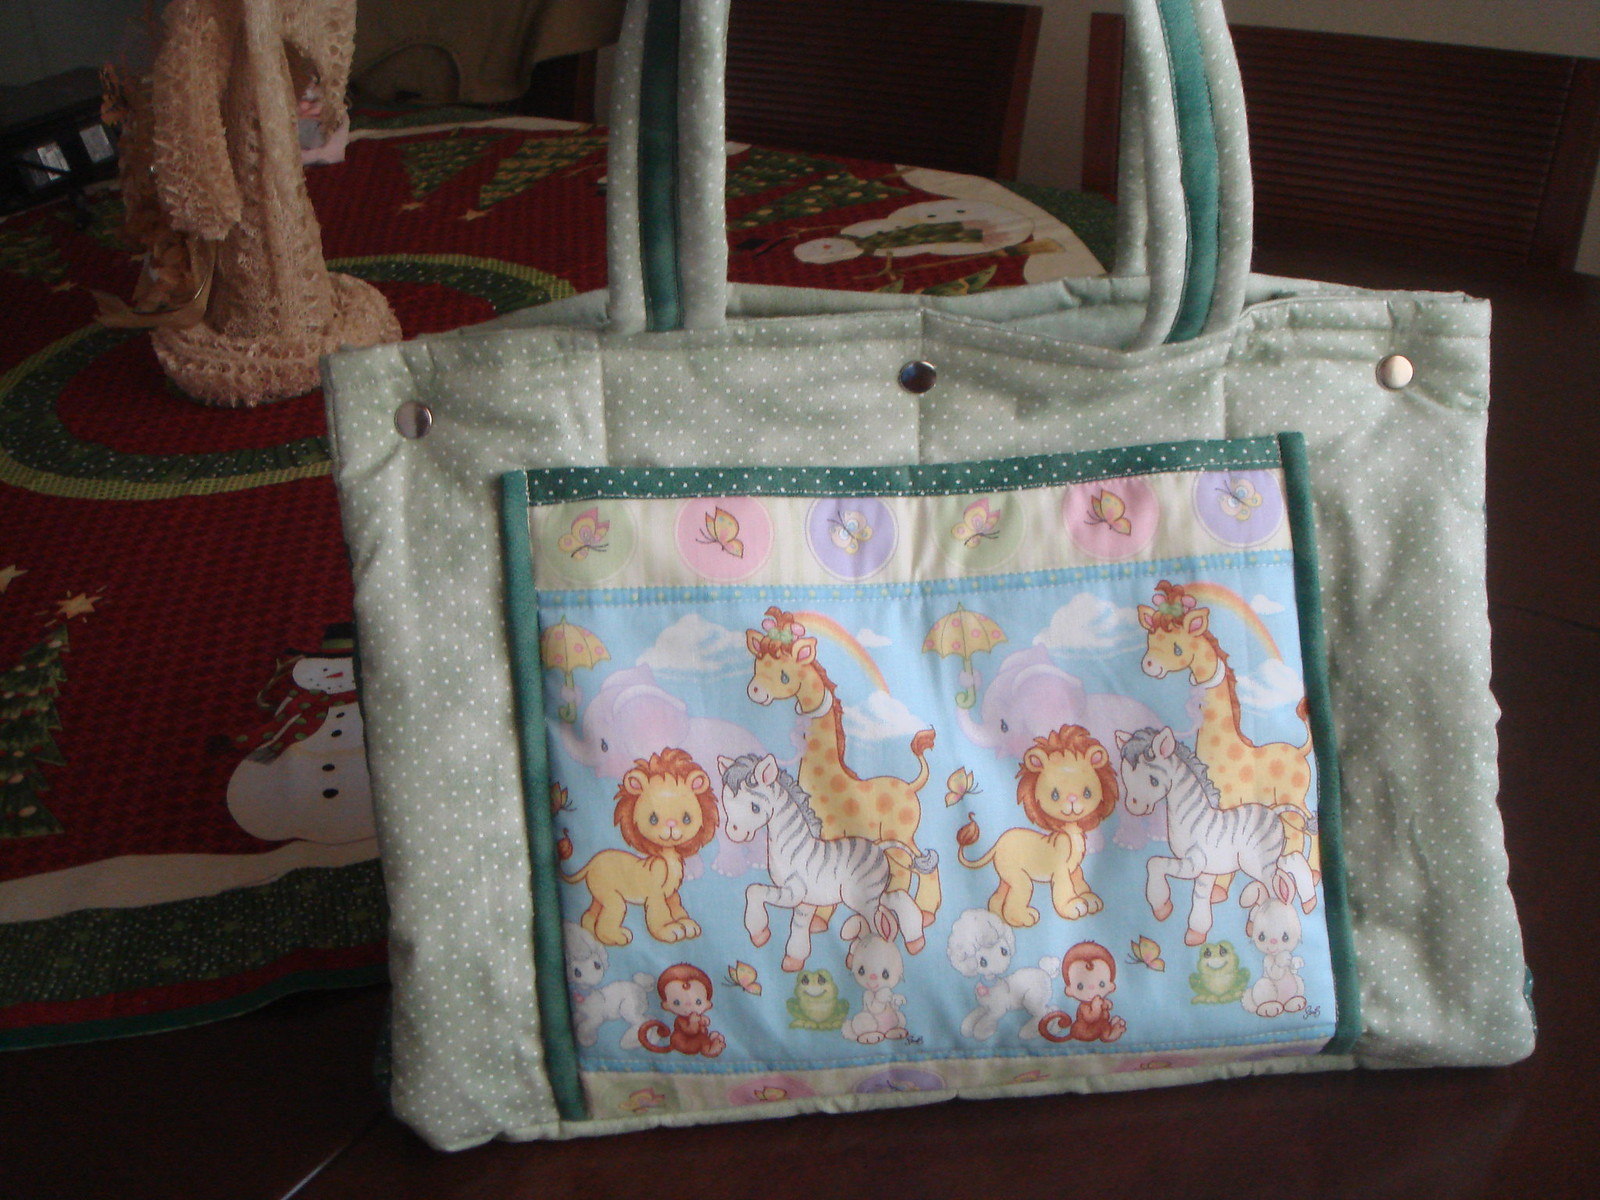 Bolsa Da sabrina | Flickr - Photo Sharing!